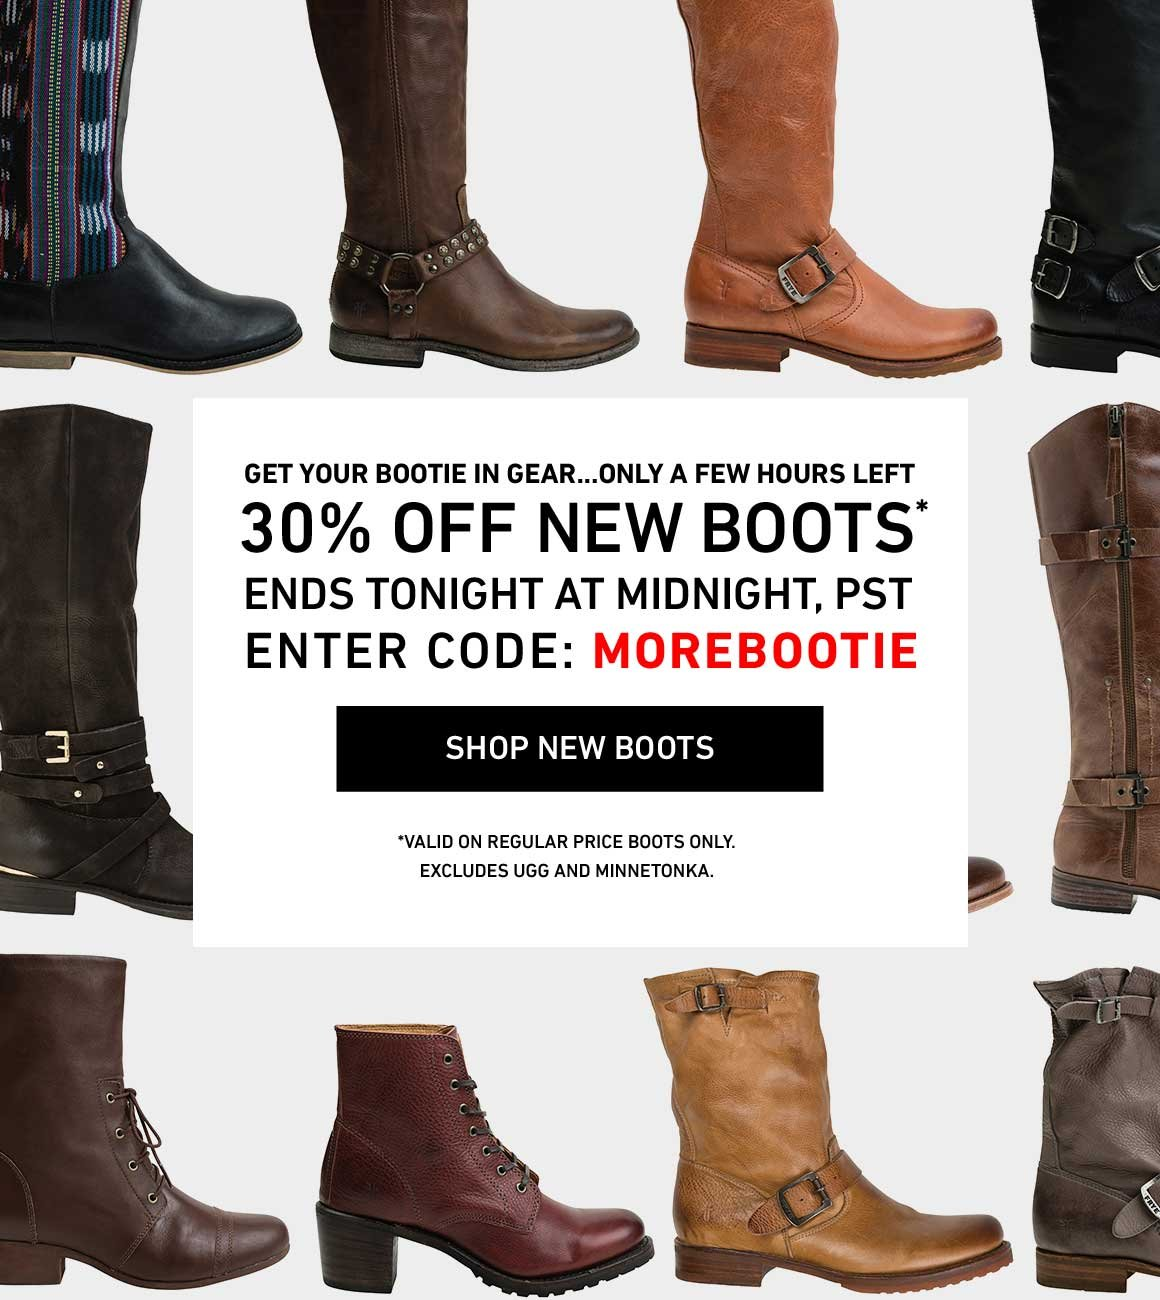 FINAL HOURS: 30% Off All New Women's Boots Ends At Midnight! Enter Code: MOREBOOTIE